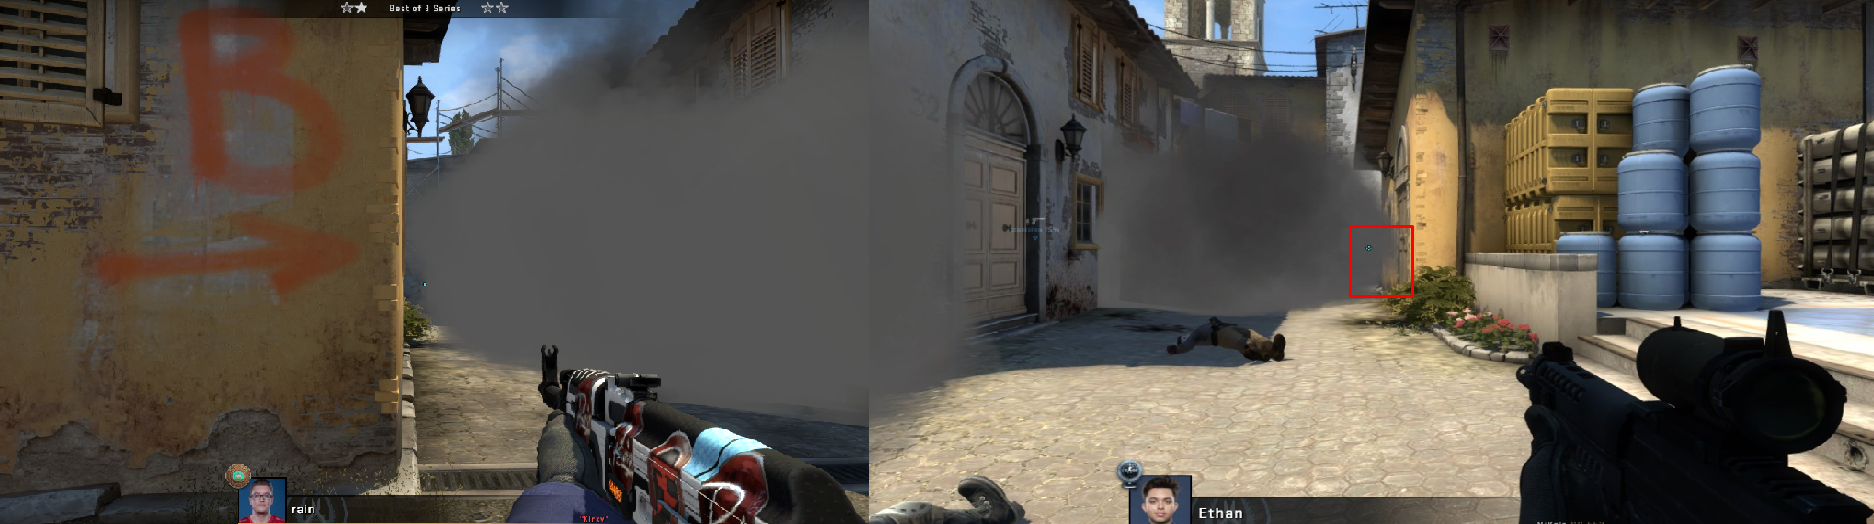 An image showing the players views of the map with Ethans view in the right corner